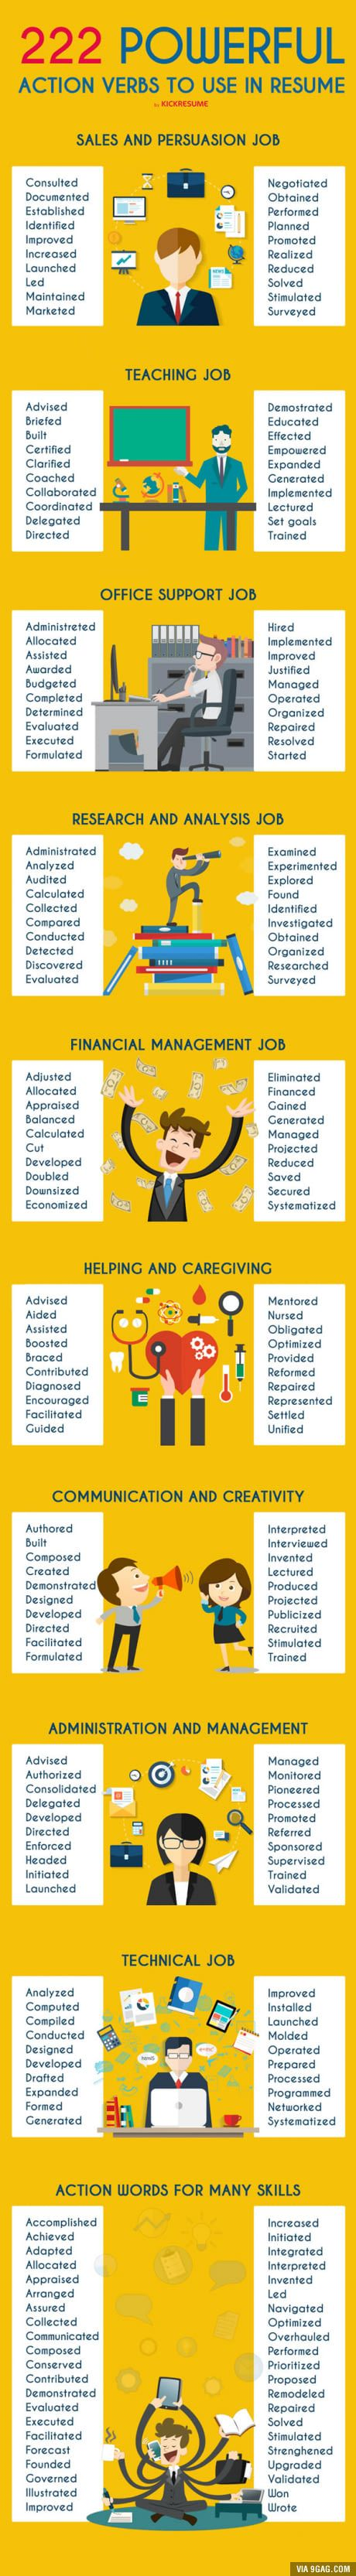 Resume Cheat Sheet: 222 Action Verbs To Use In Your New Resume